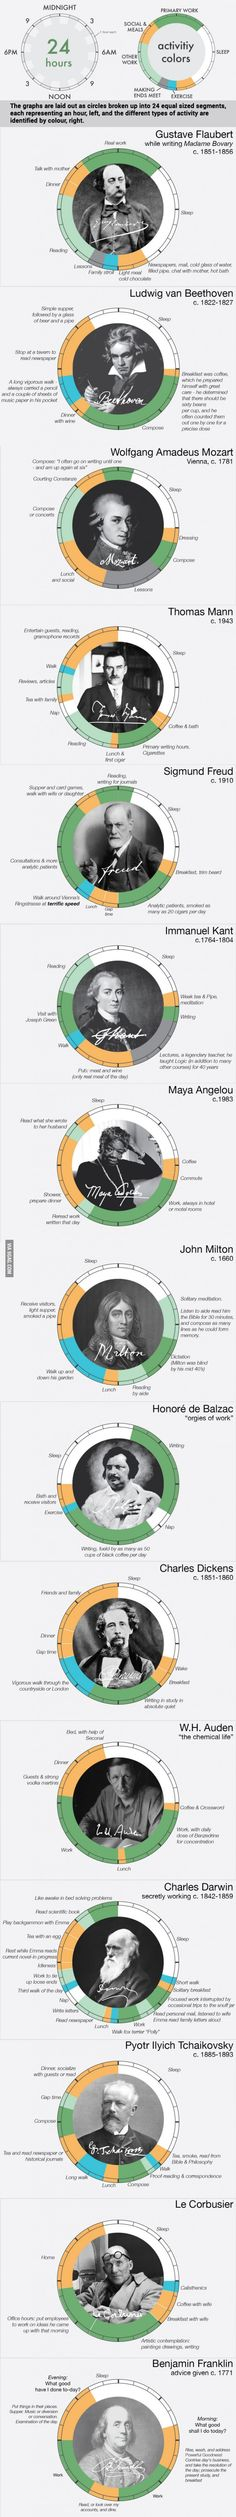 How These 15 History's Biggest Thinkers Spent Their Days  ❤